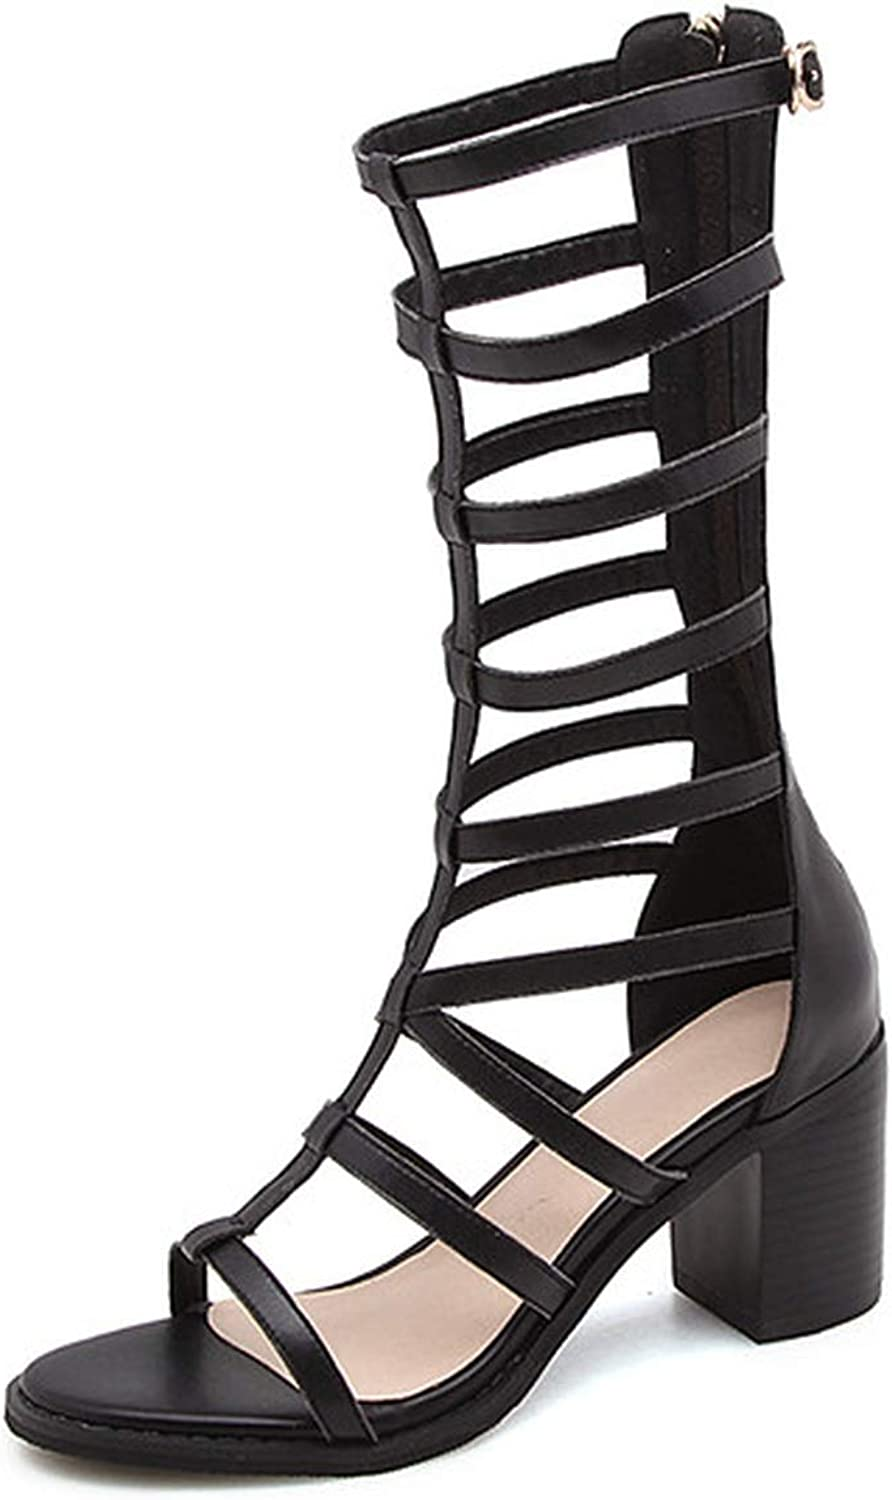 YuJi Gladiator shoes Natural Genuine Leather Thick High Heels Real Leather Zipper Sandals